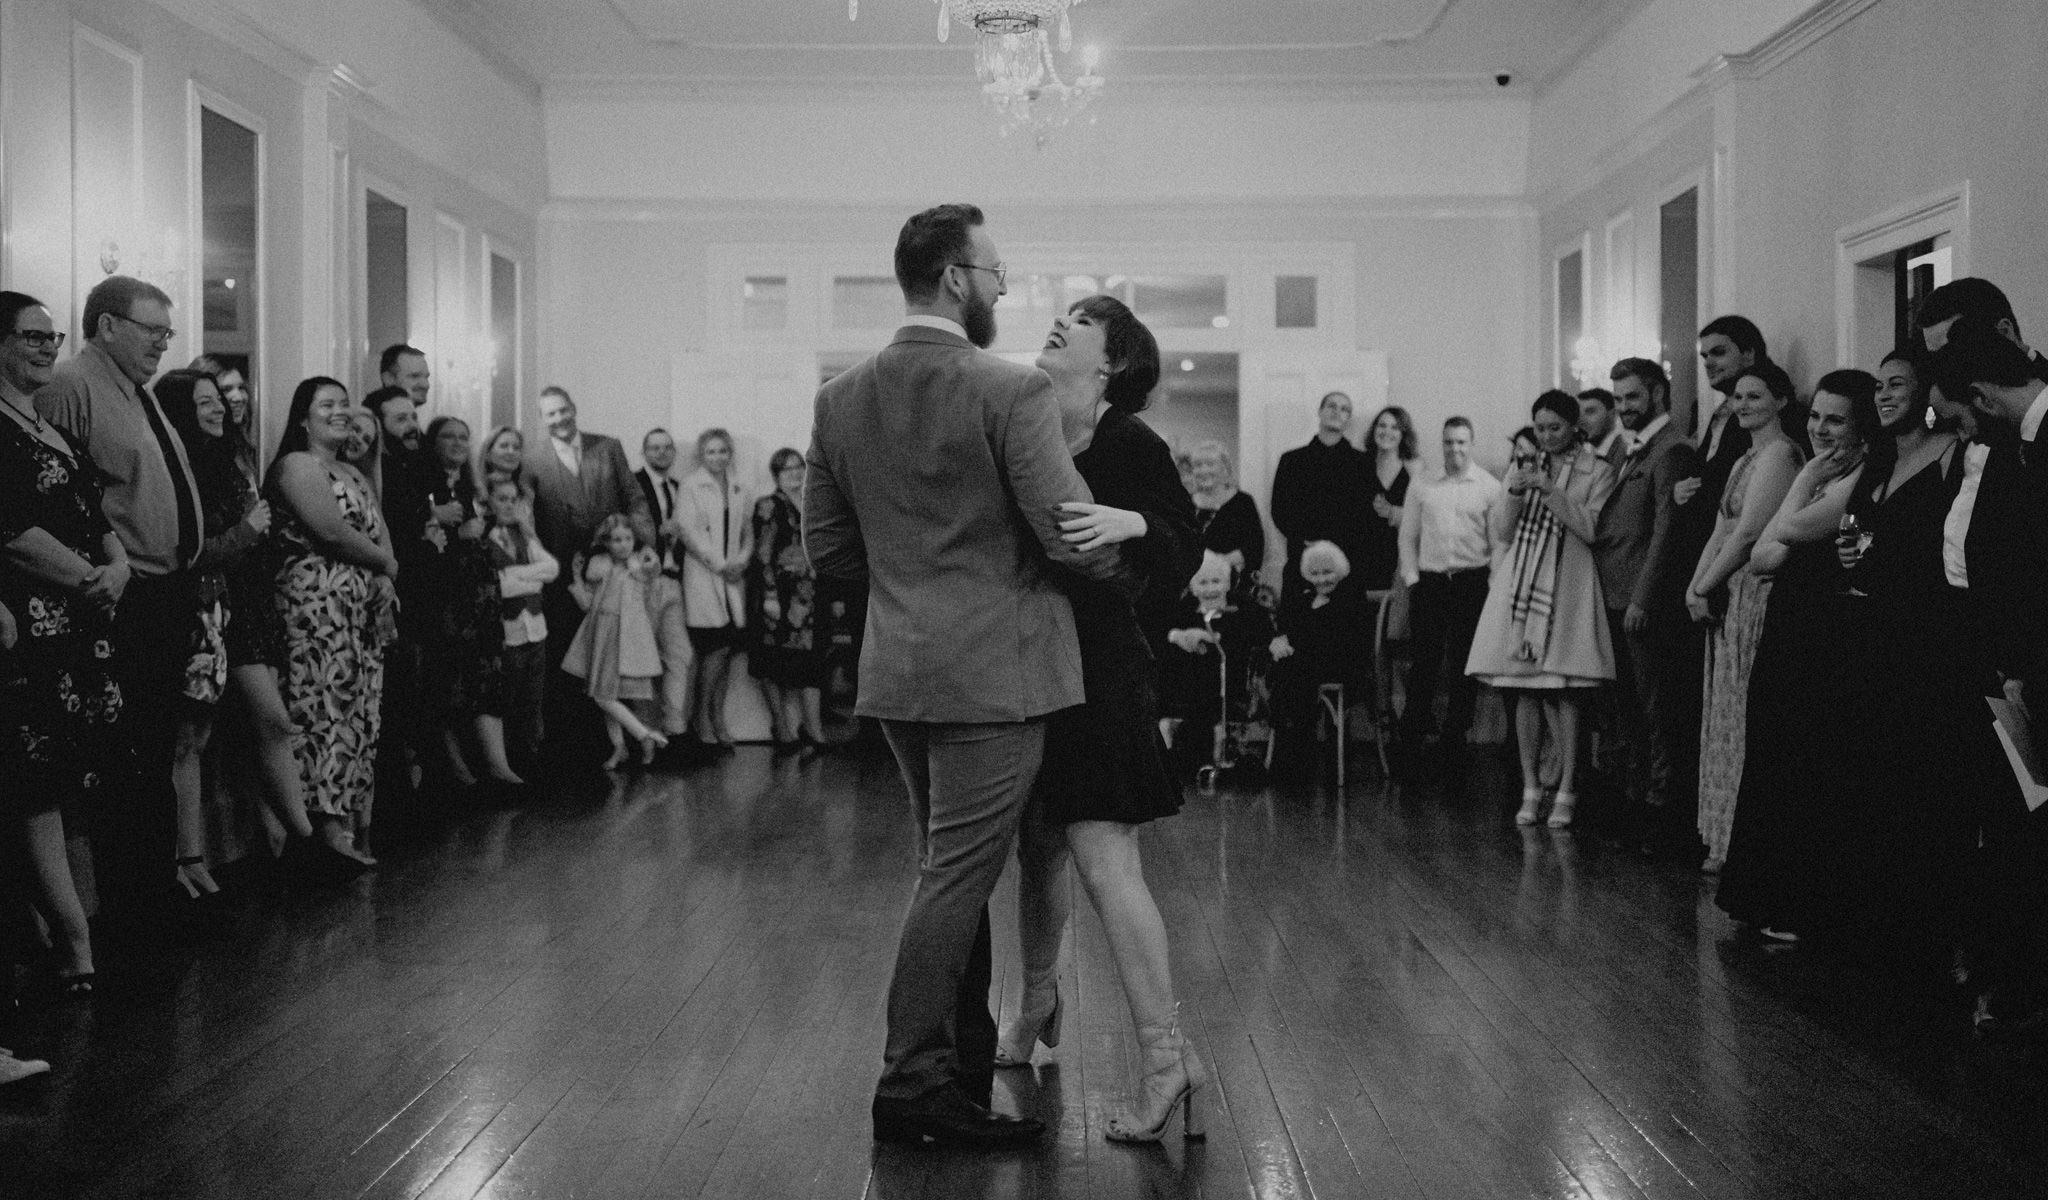 Newlyweds perform their first dance together in front of a crowd of family